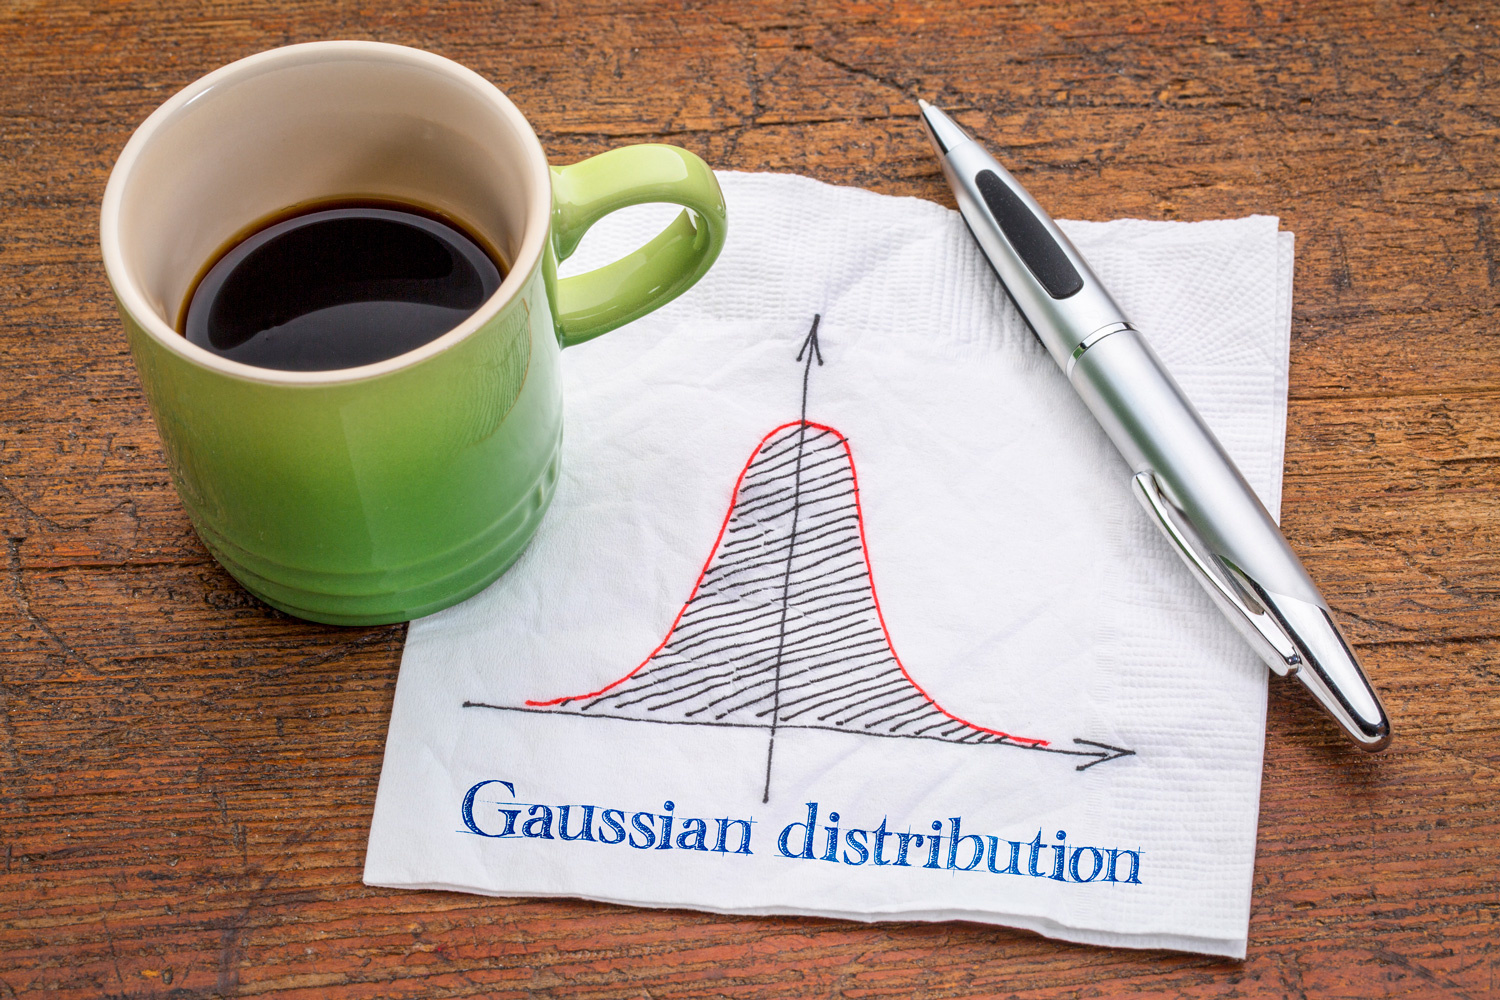 Gaussian distribution, bell curve diagram